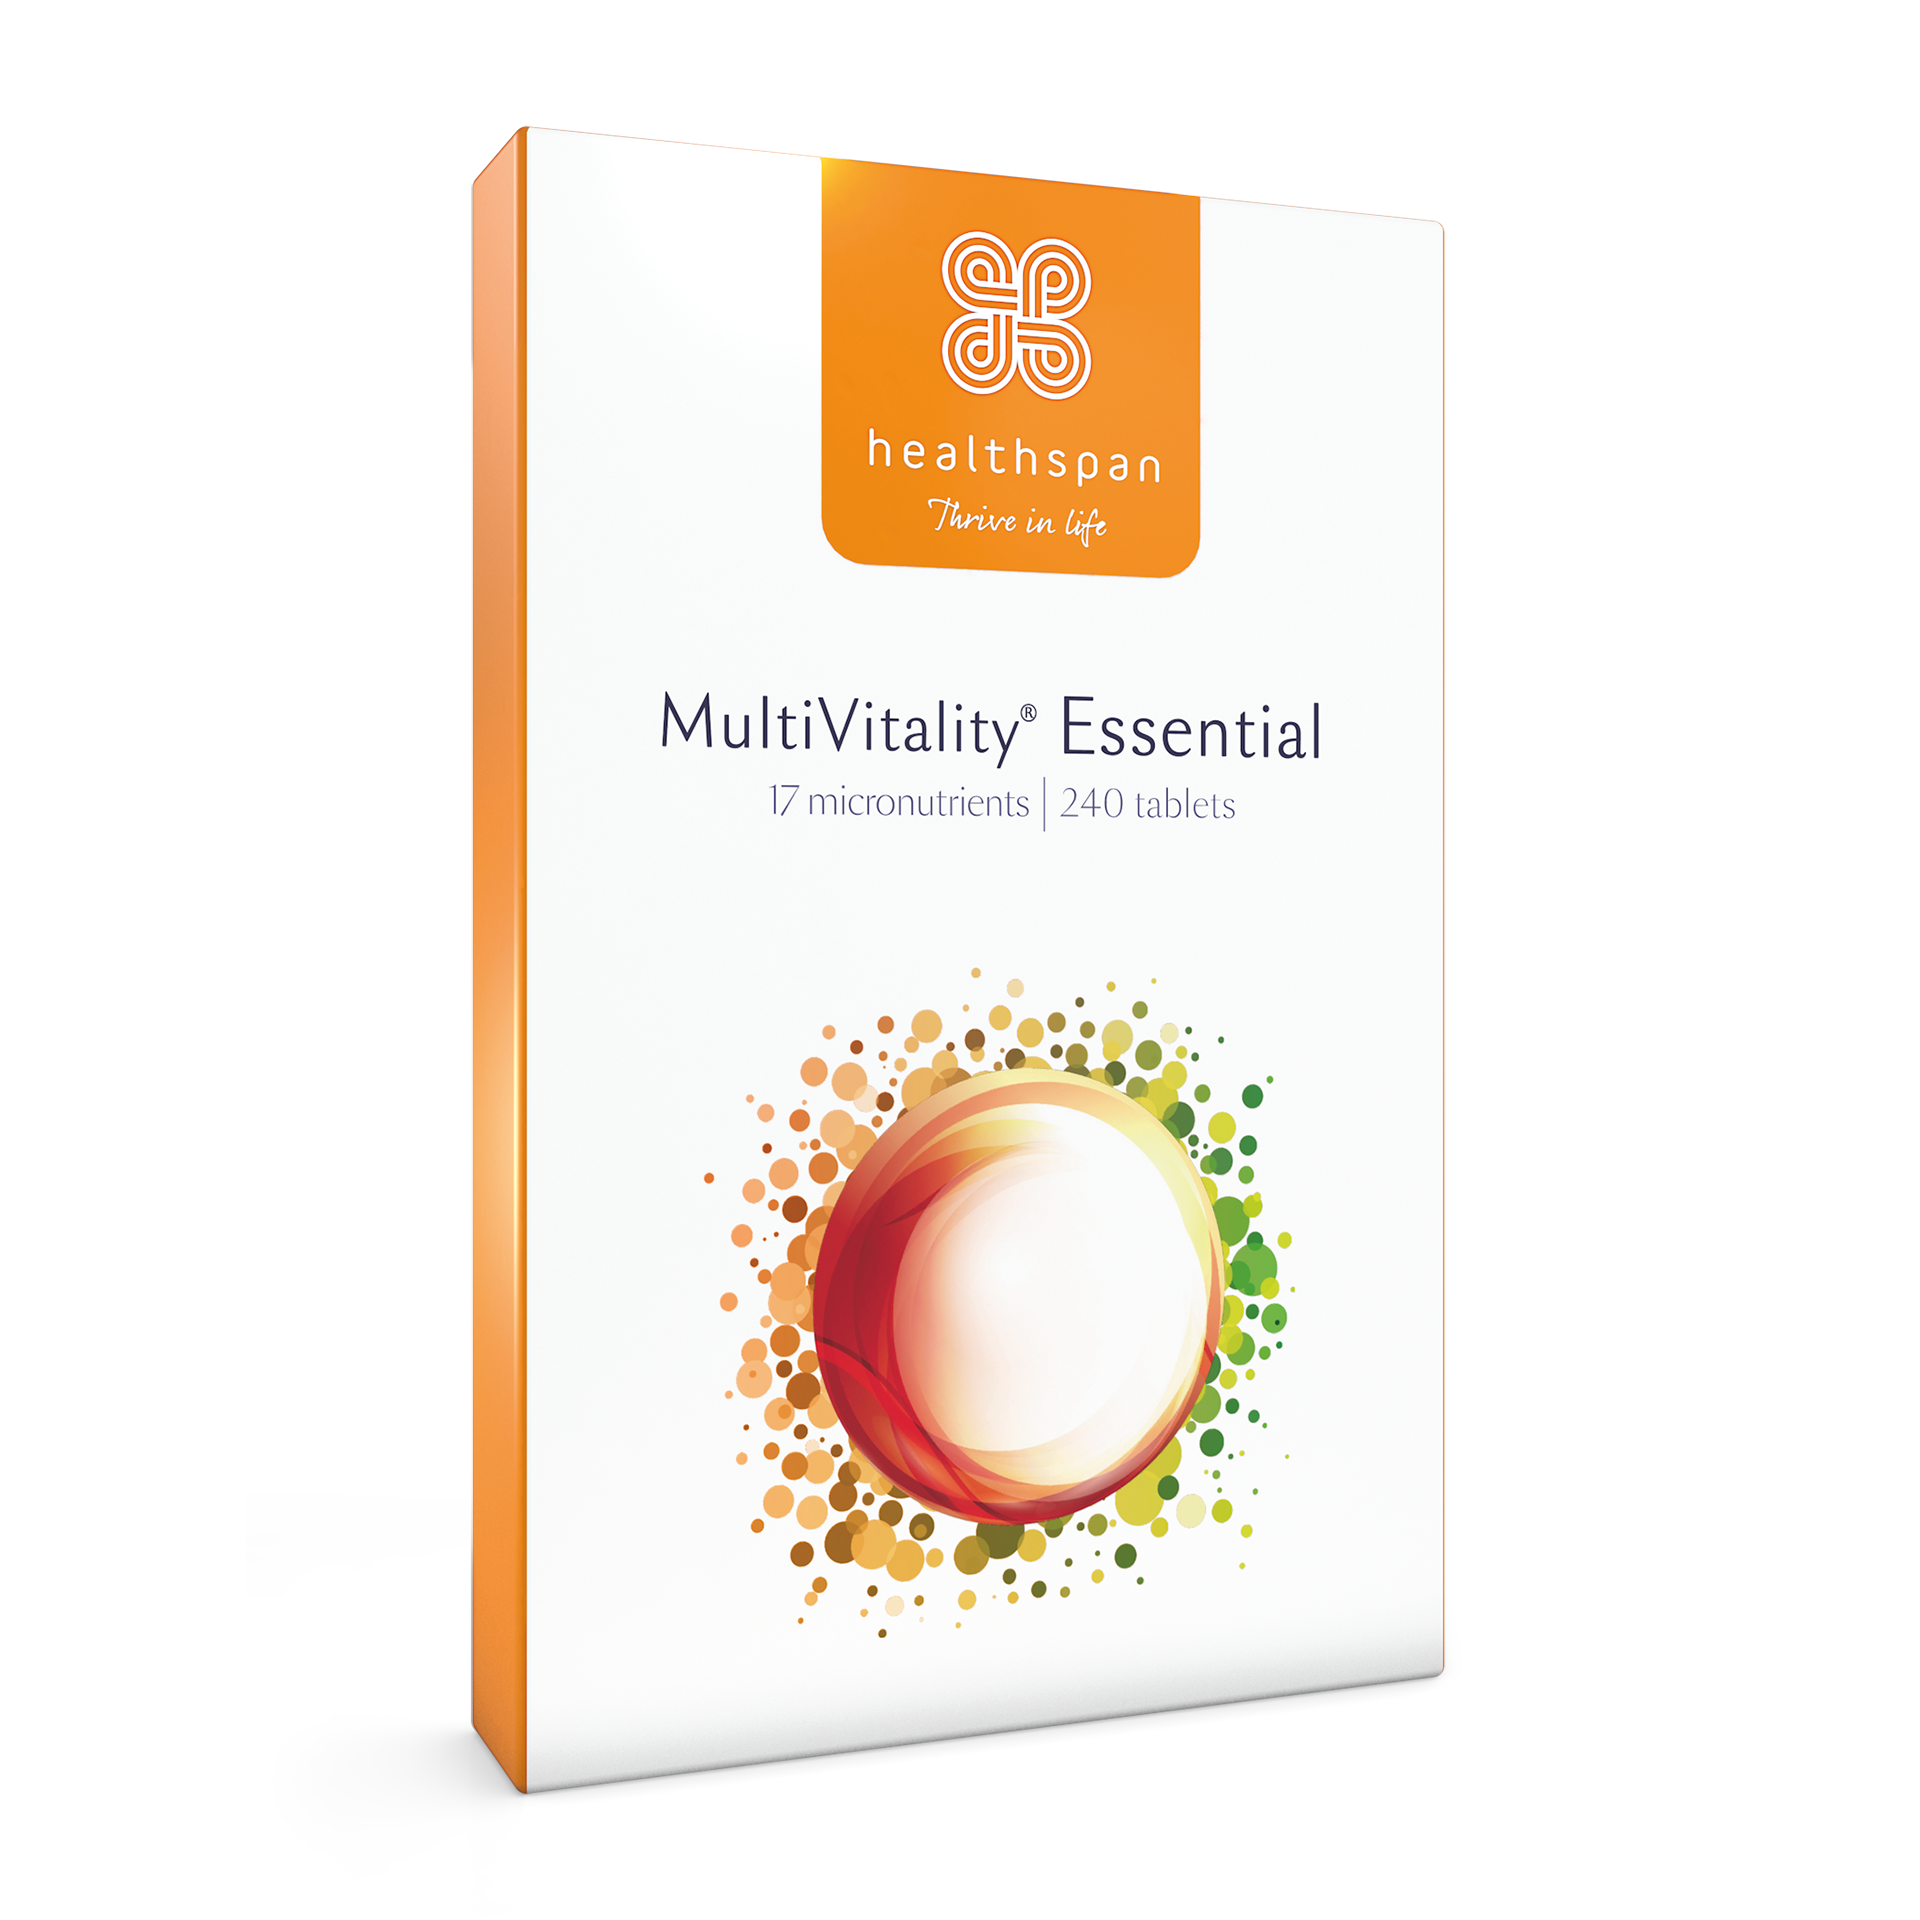 MultiVitality Essential